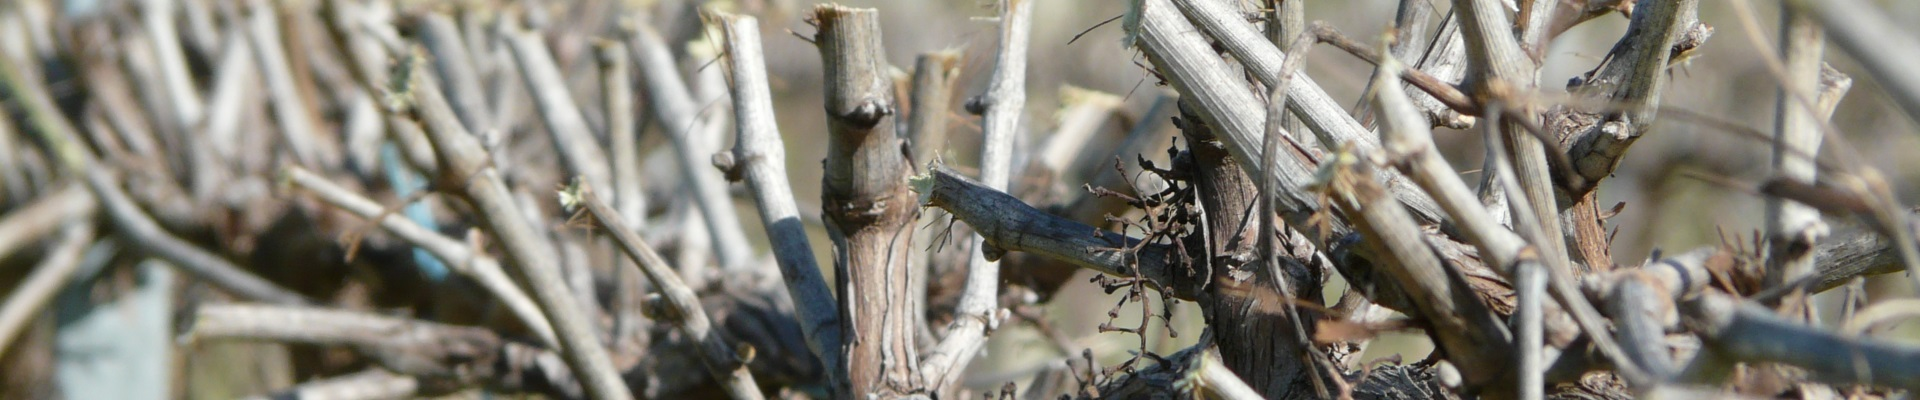 Vines after barrel pruning - Ackland Vineyard Services